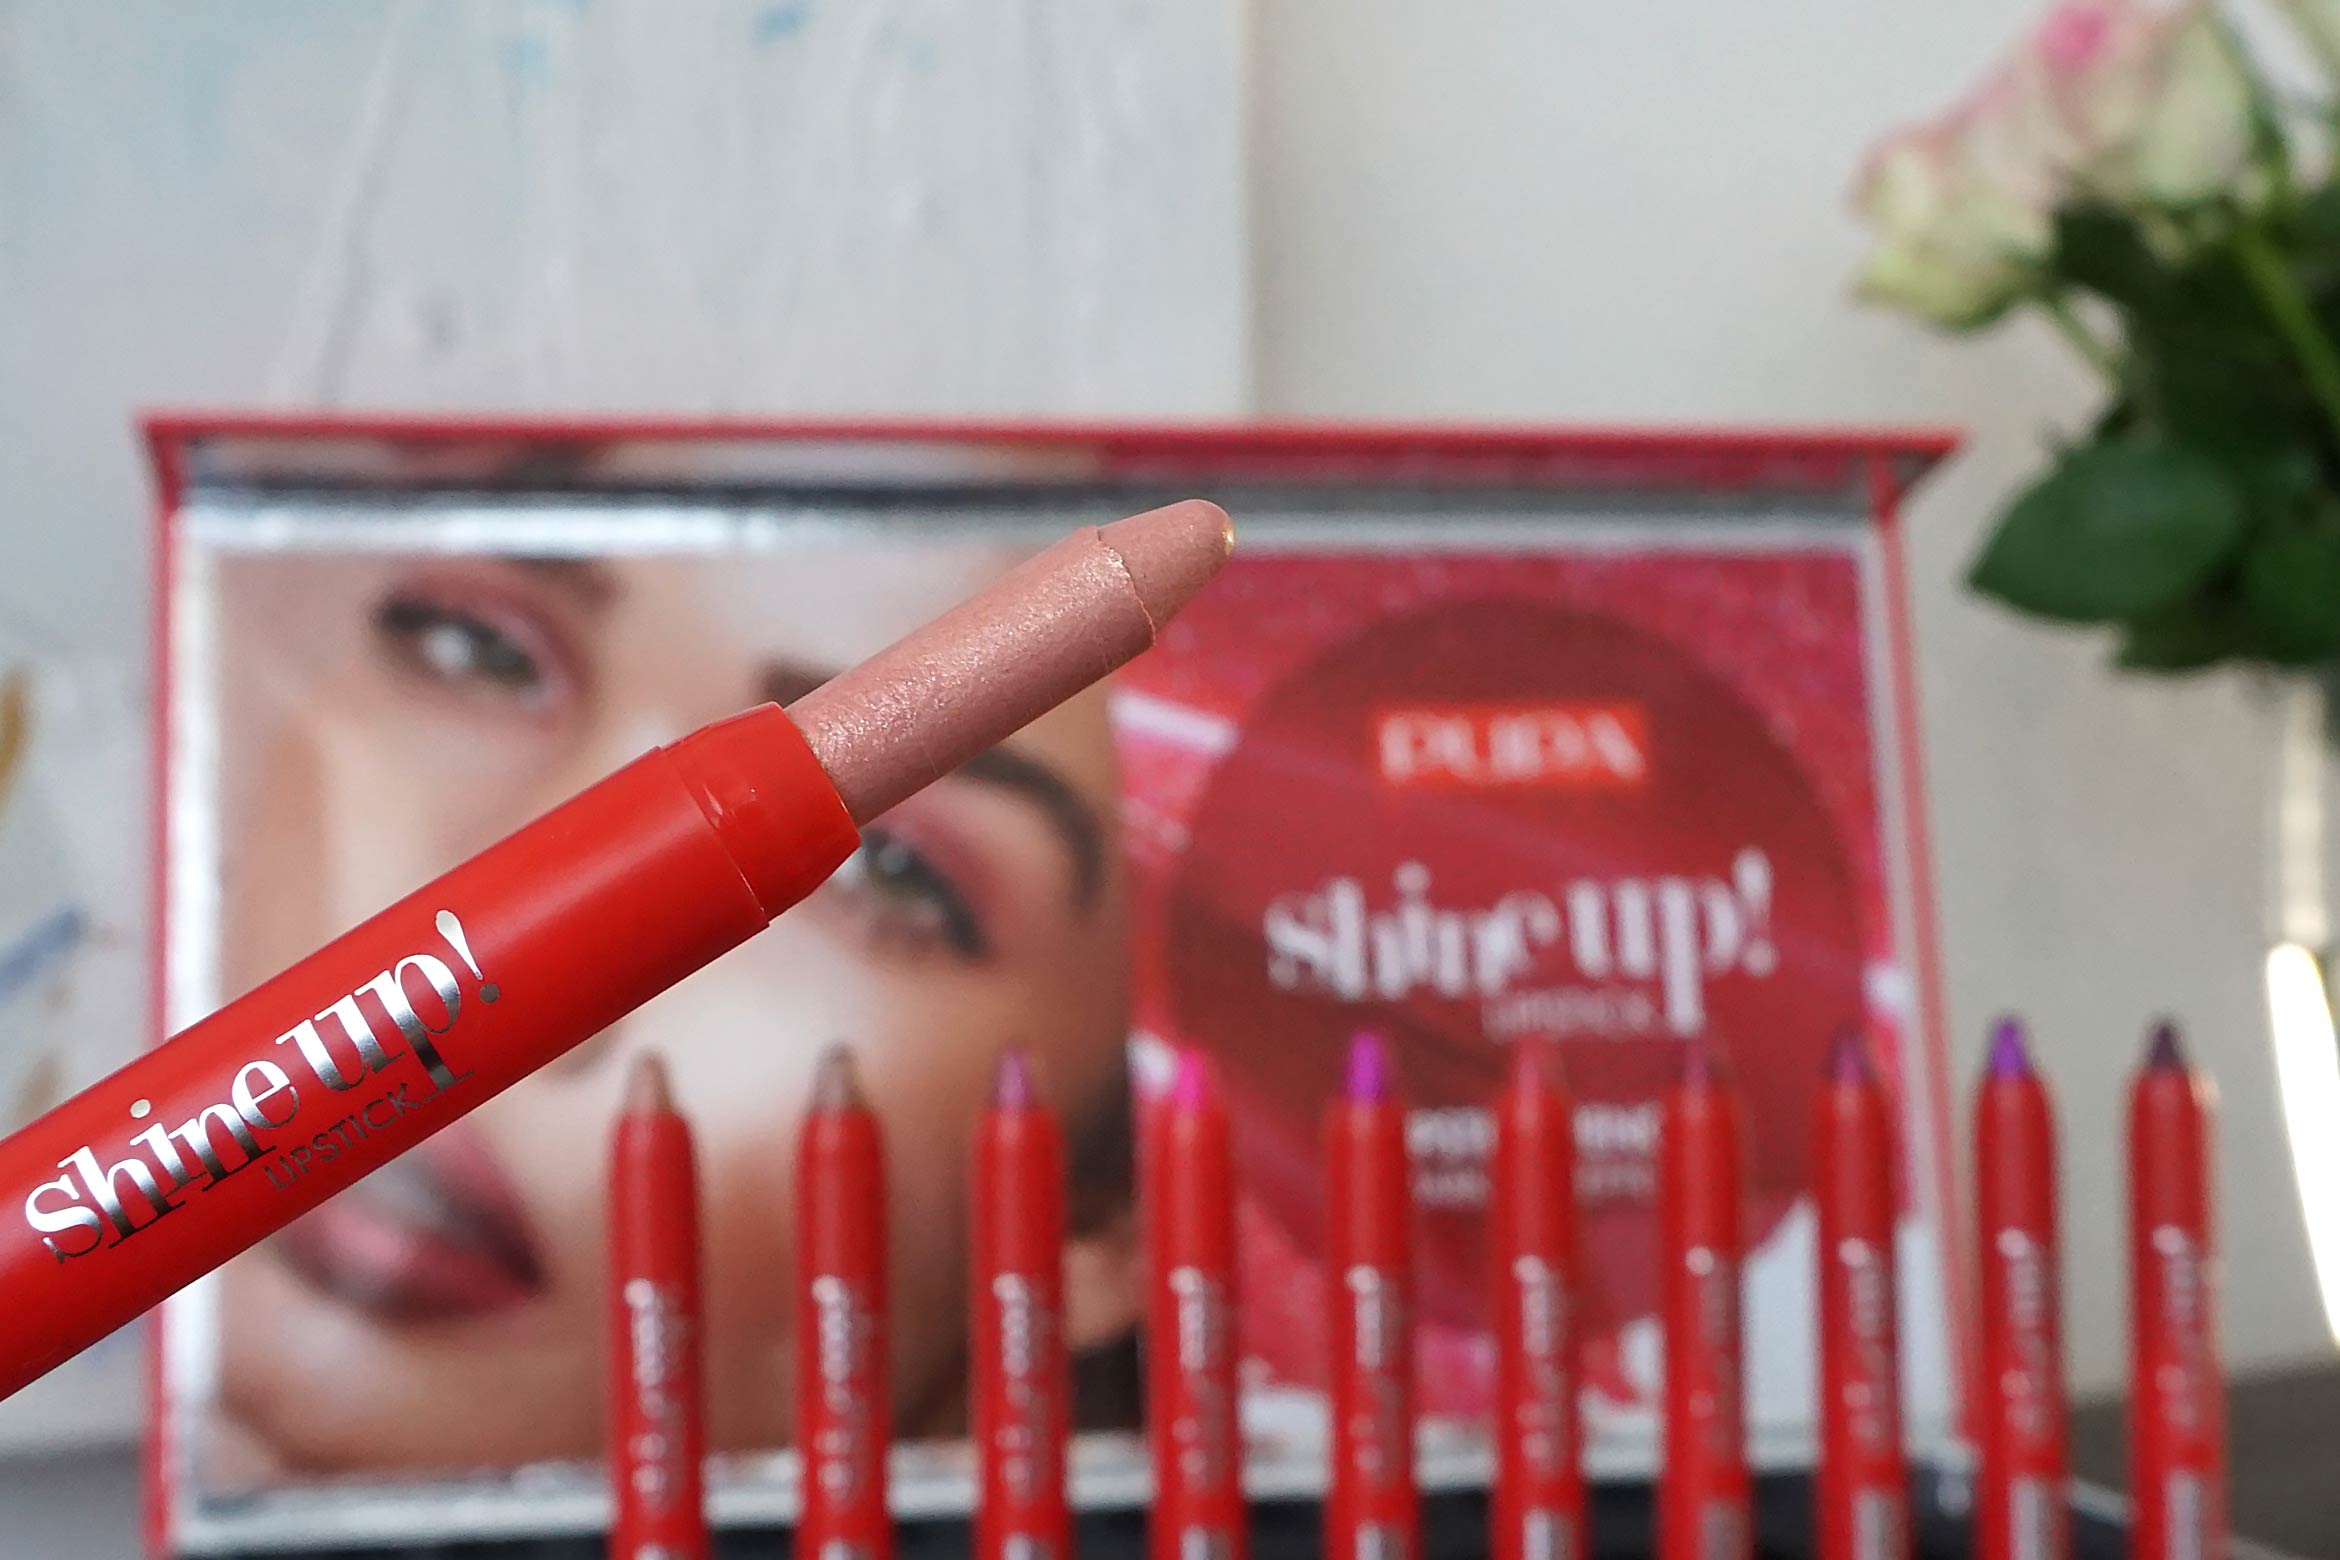 pupa shine up lipstick review-2